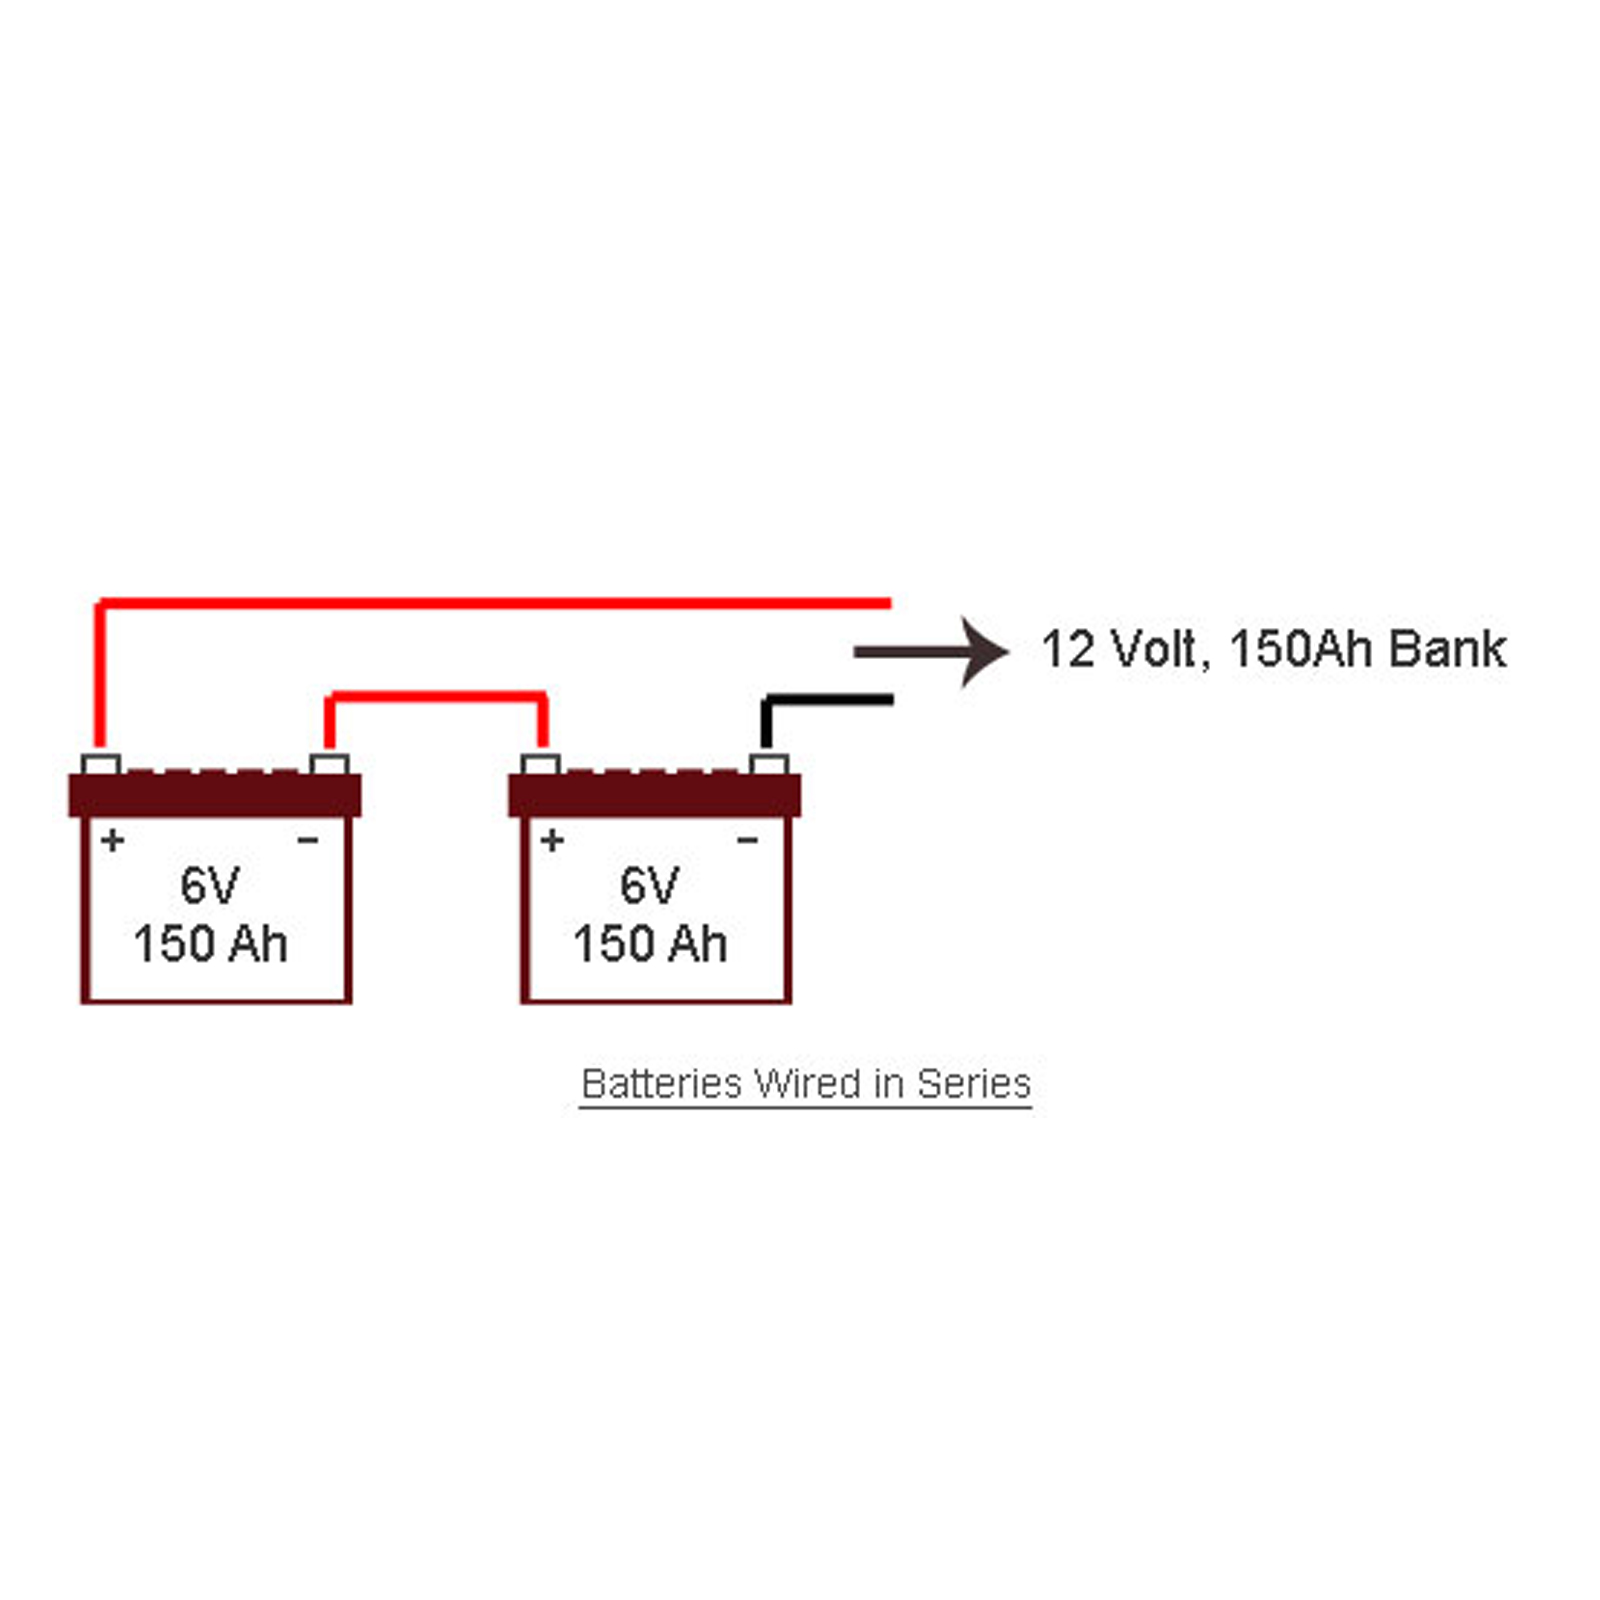 6v rv battery wiring diagram ademco vista 20p 4 6 volt batteries 12 system get free image about